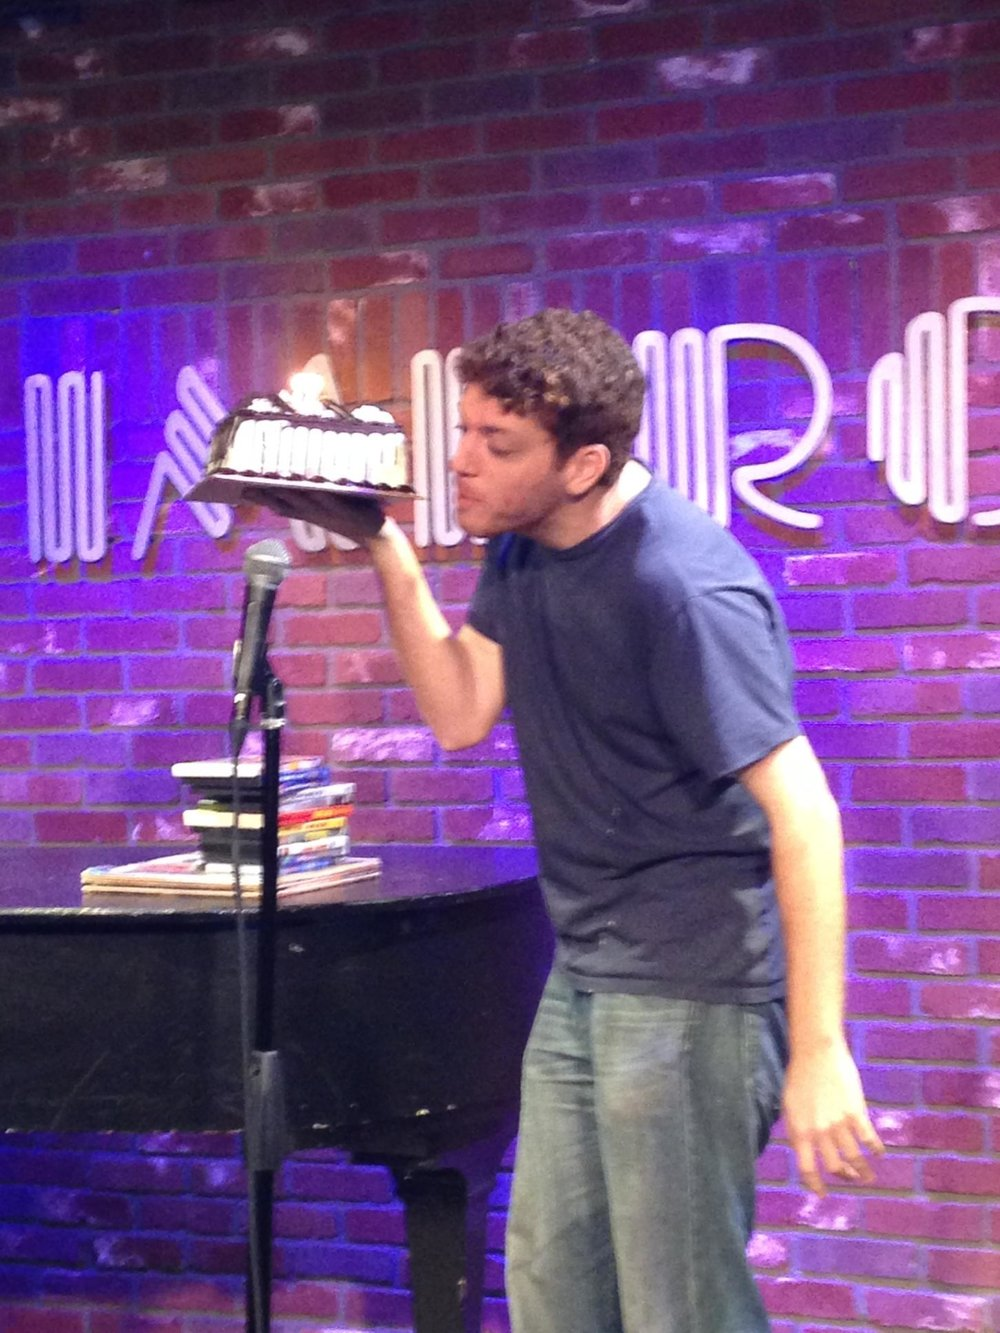 Jeffrey eats birthday cake 2014.jpg